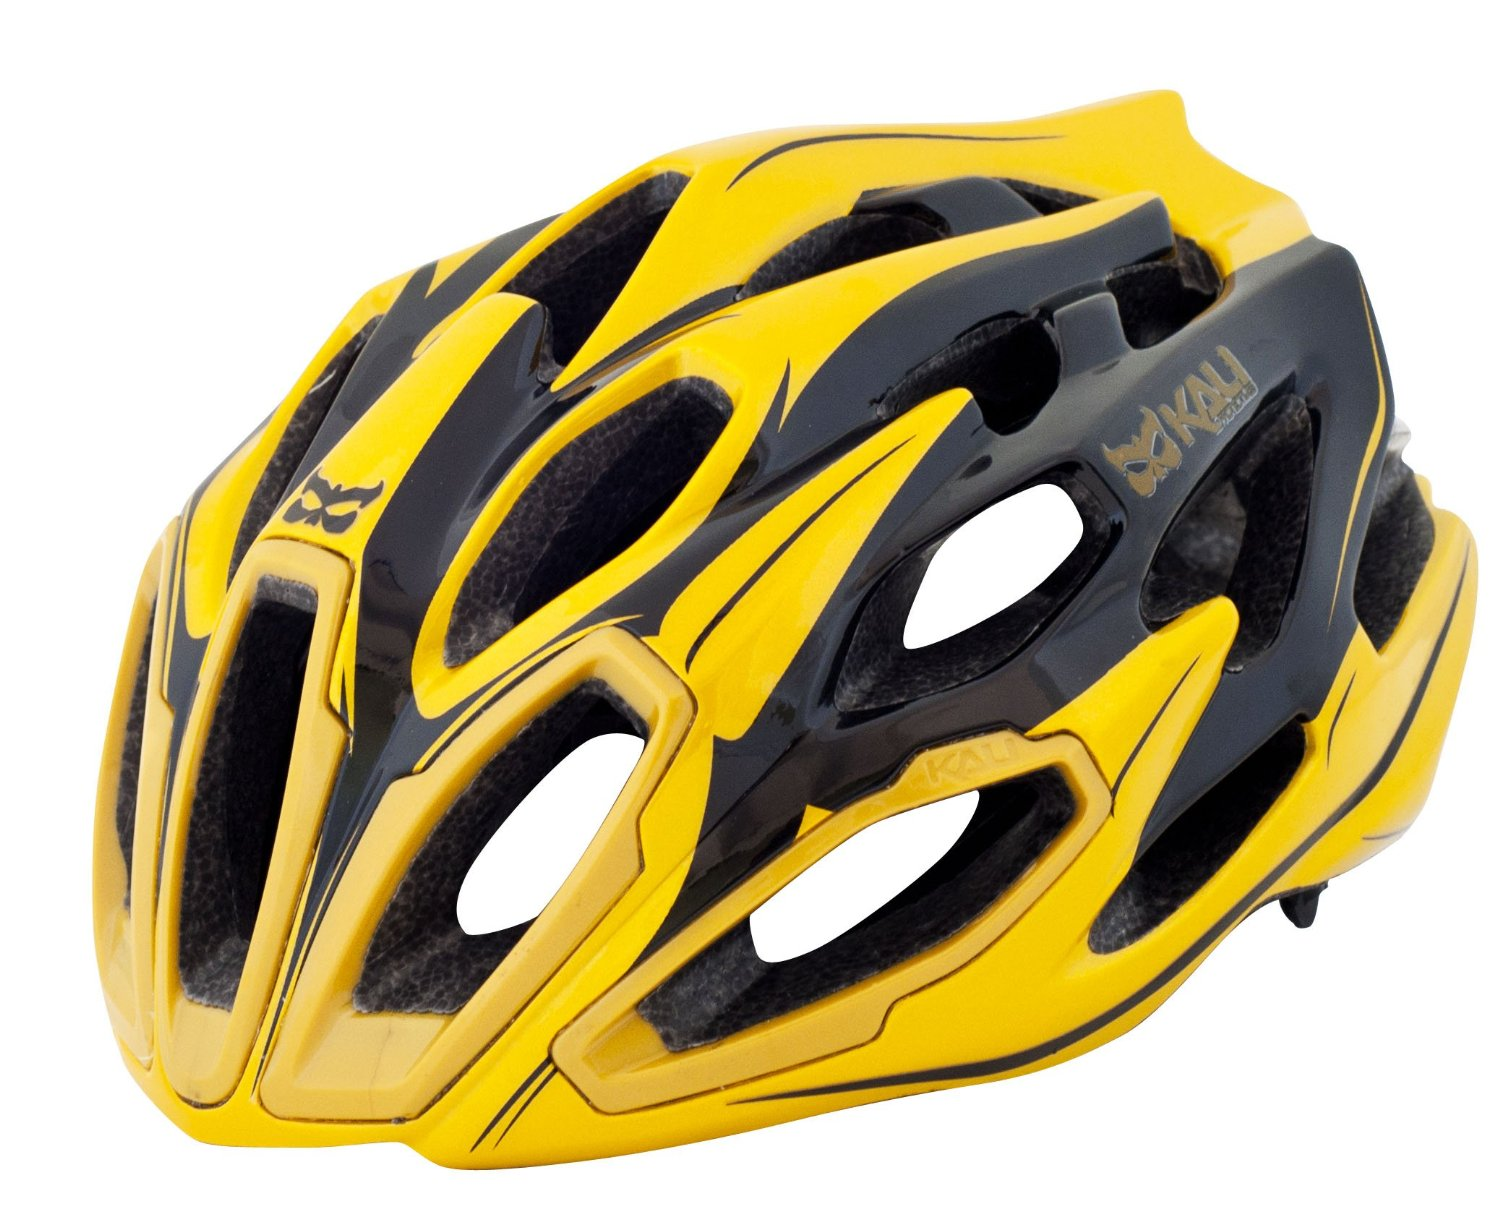 Yellow Kali Protectives Bicycle Helmets